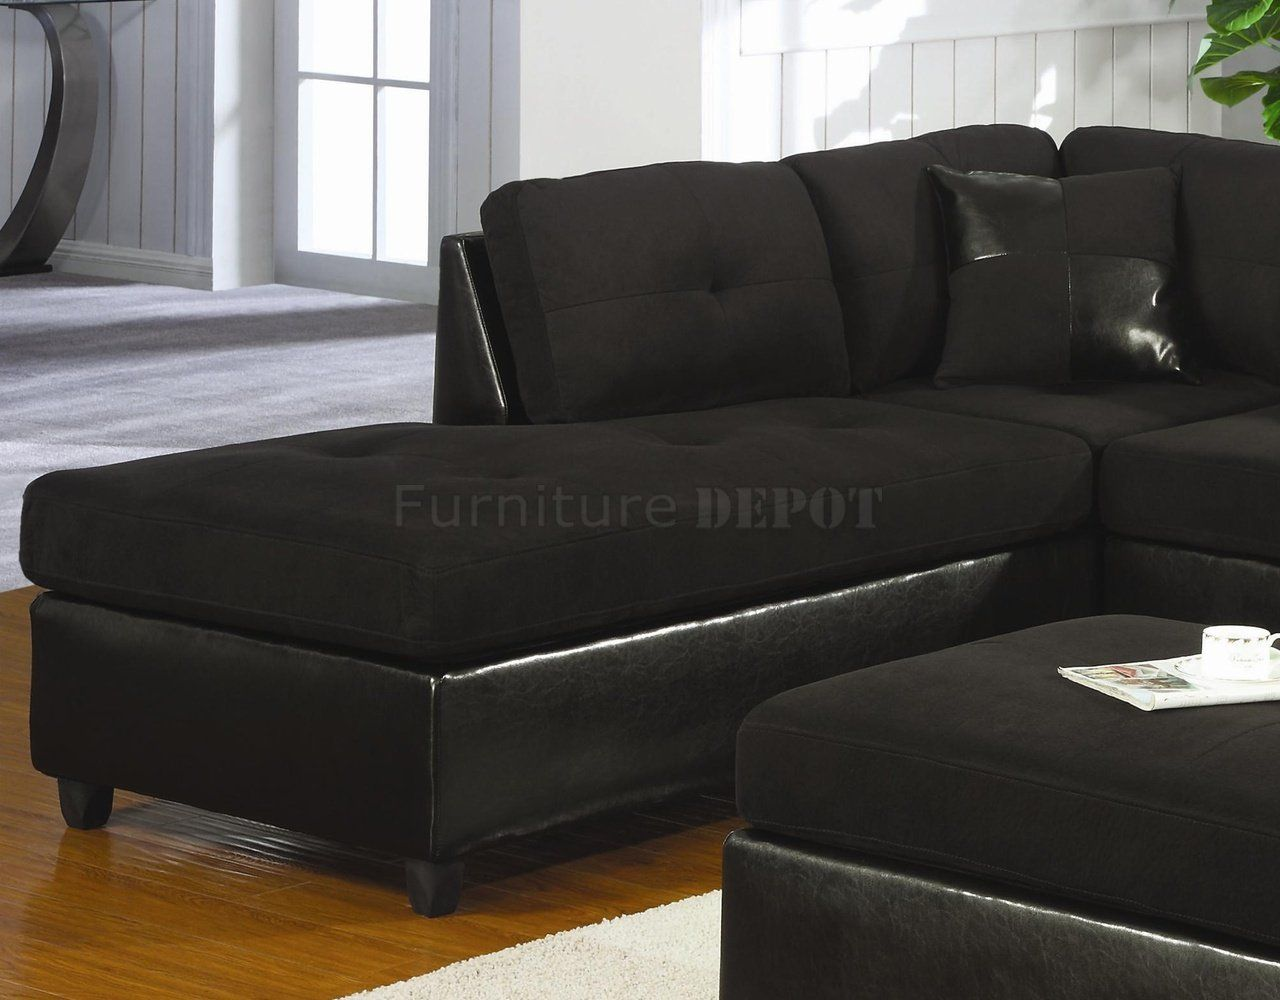 Black Microsuede Couch Microfiber Faux Leather Contemporary Sectional Sofa 500735 Black